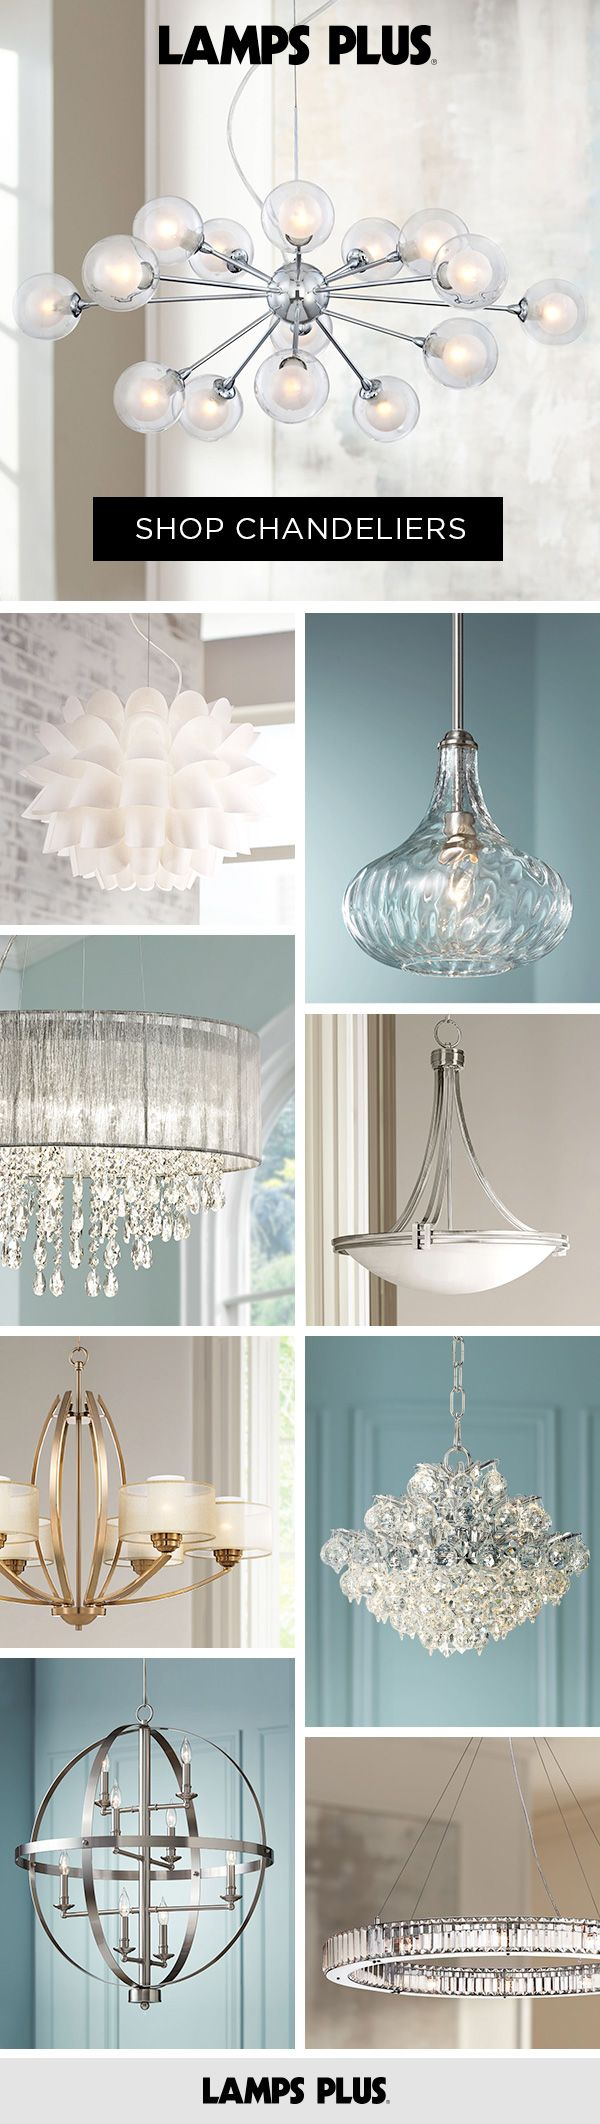 1281 best chandeliers images on pinterest chandeliers florida houses kitchen lighting kitchen designs kitchen ideas light fixtures home ideas chandeliers electric lamps arubaitofo Choice Image